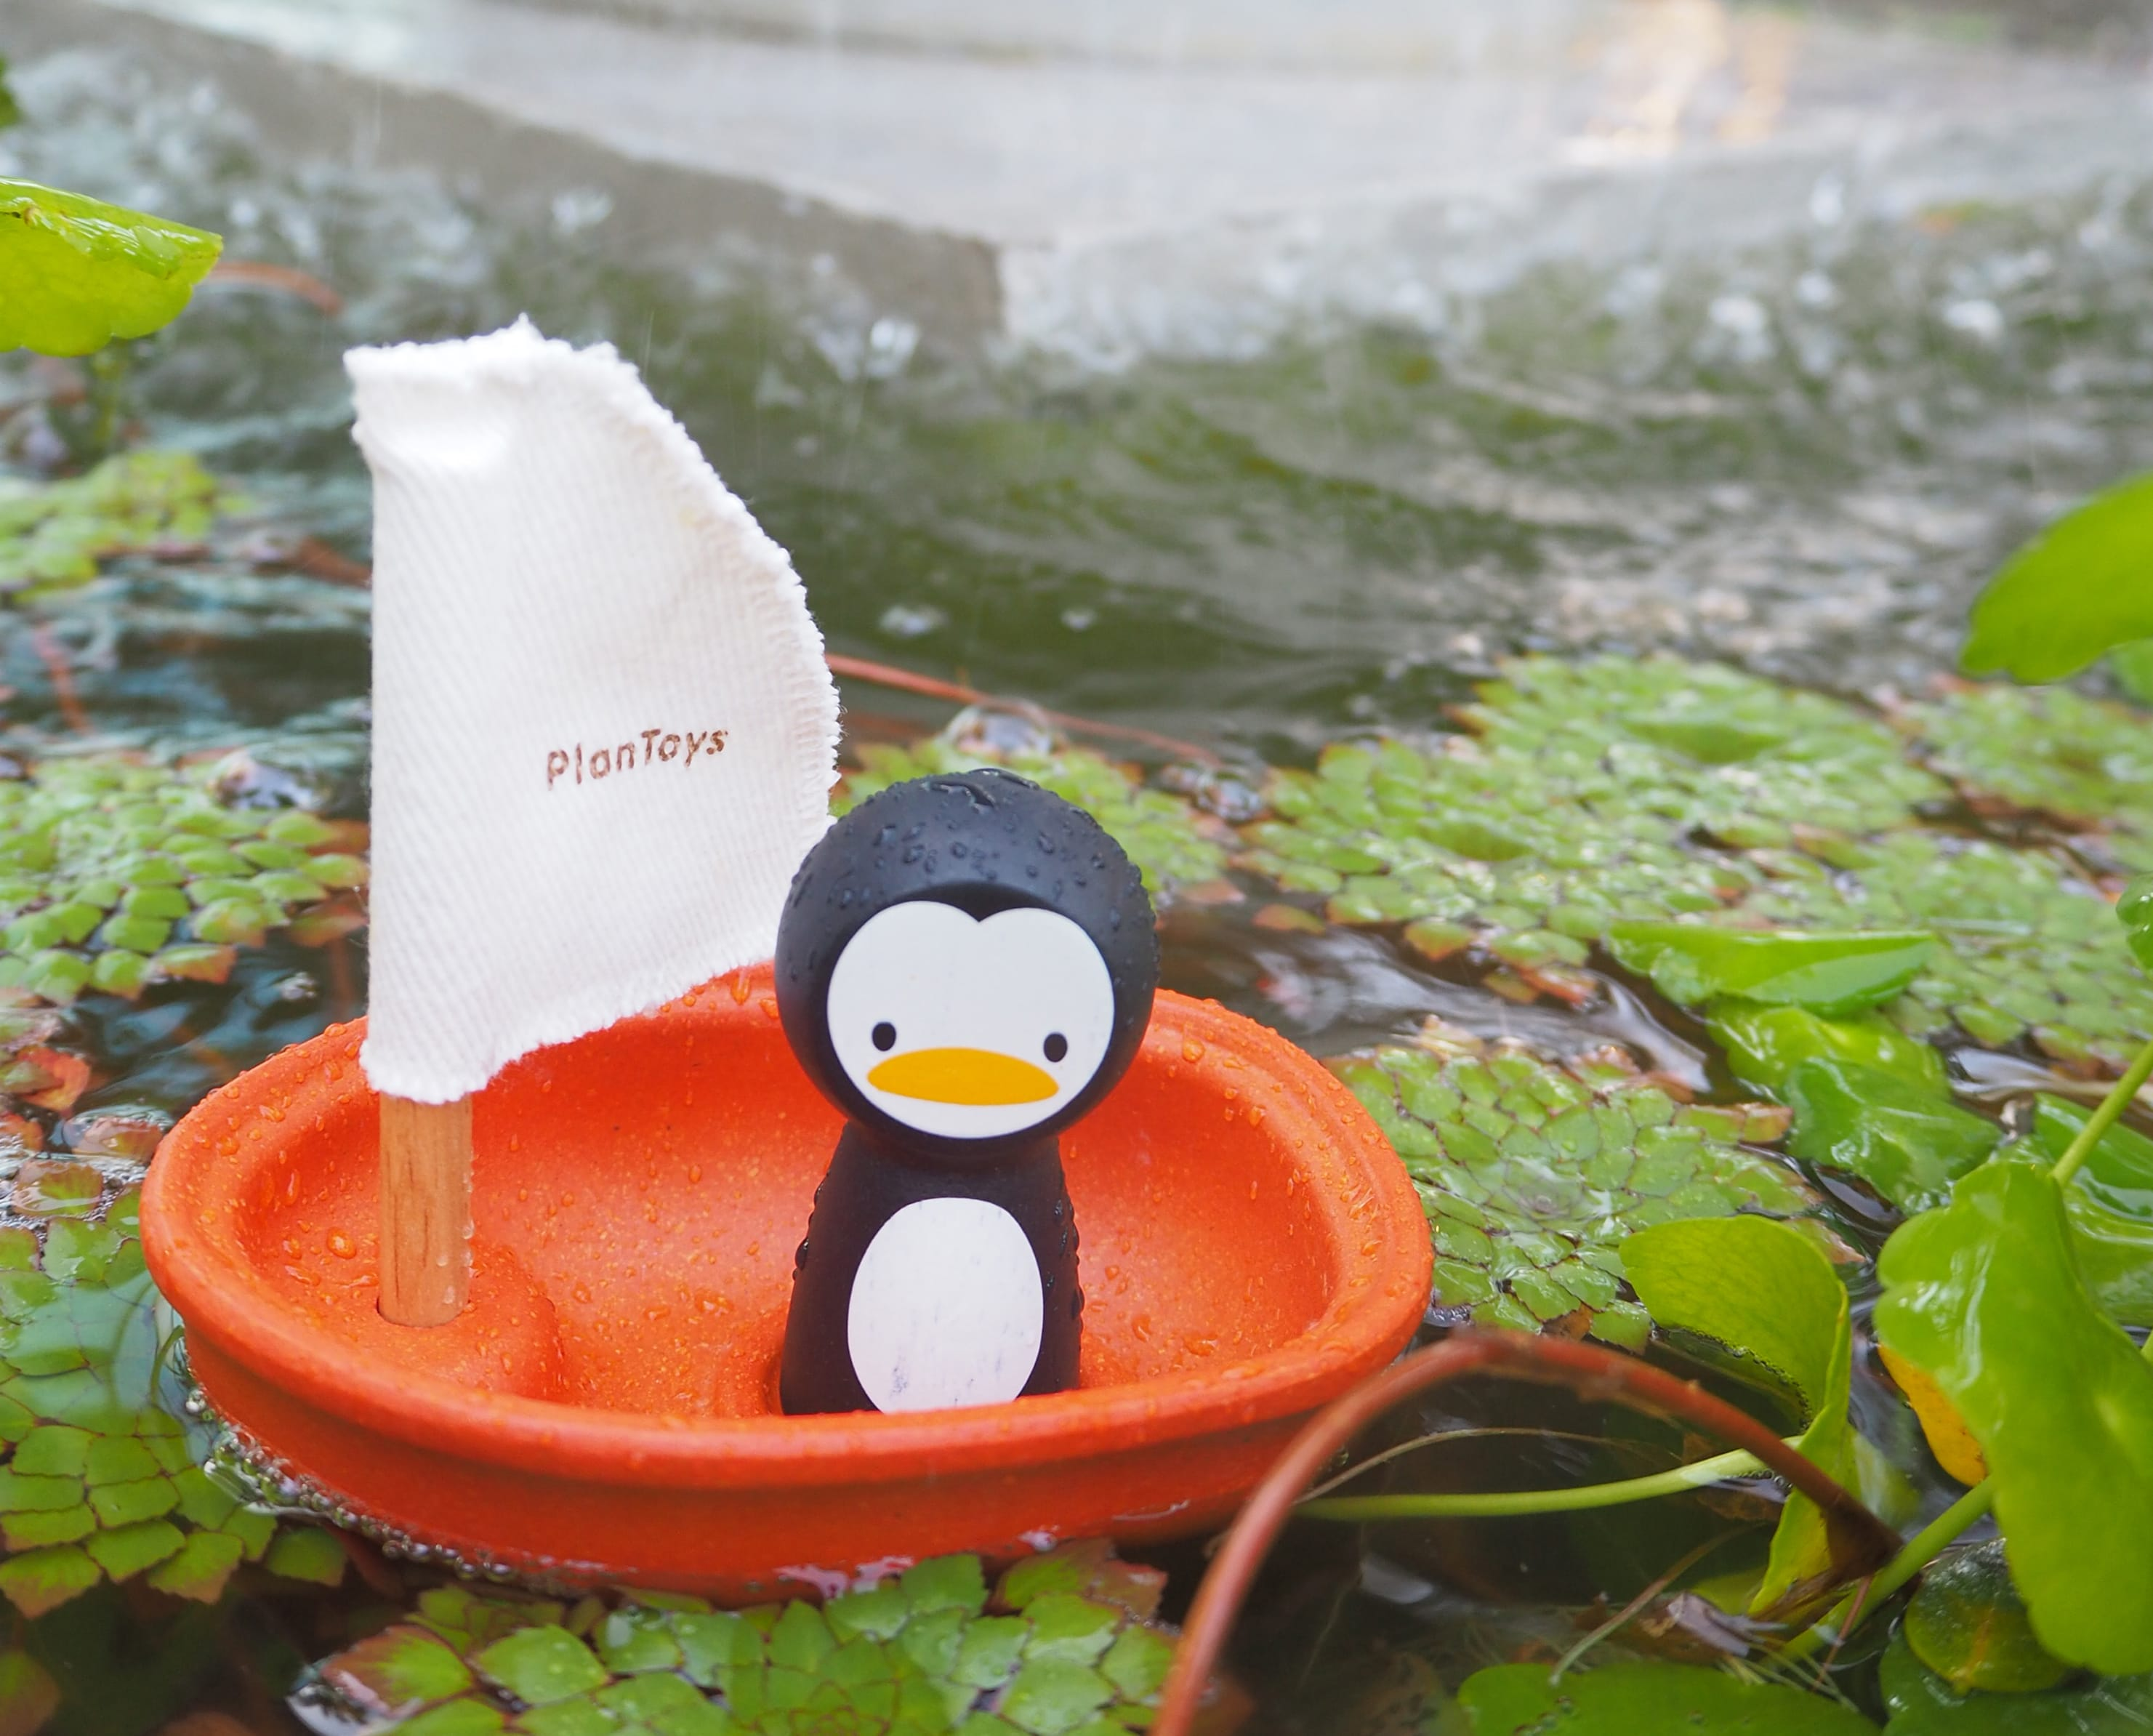 5711_PlanToys_SAILING_BOAT-PENGUIN_Water_Play_Imagination_Language_and_Communications_Explore_Fine_Motor_12m_Wooden_toys_Education_toys_Safety_Toys_Non-toxic_2.jpg